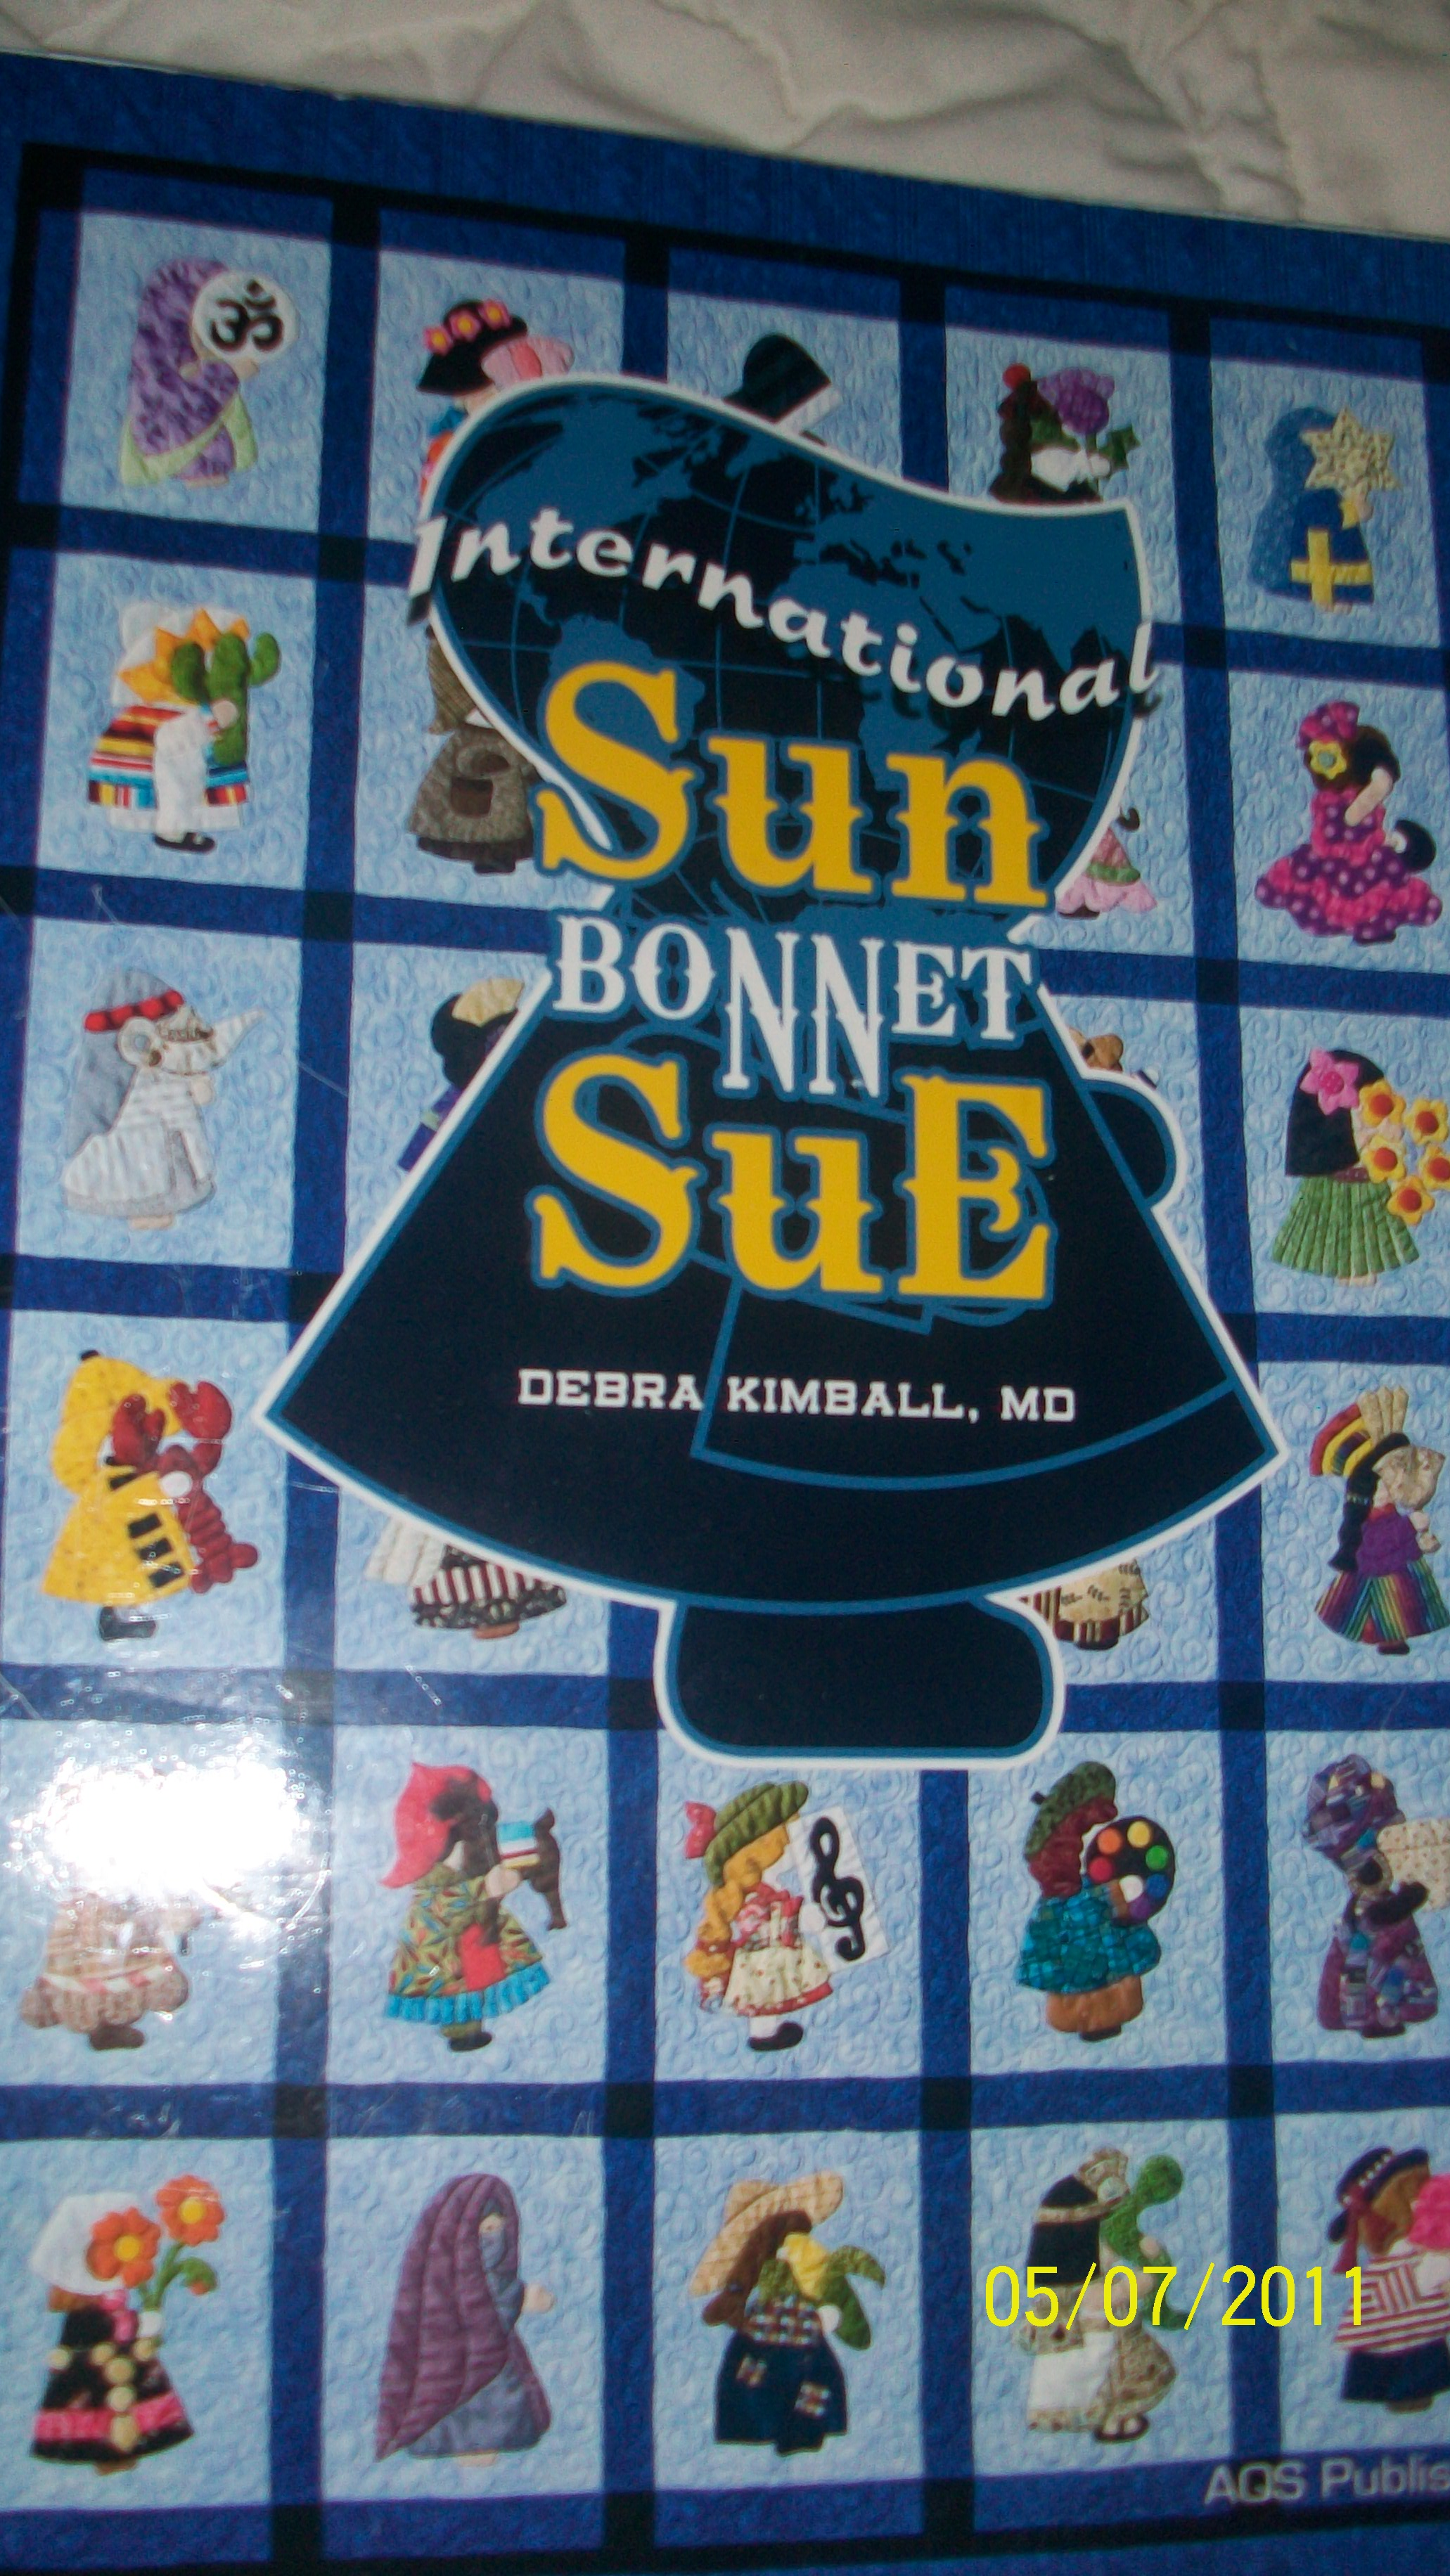 International Sunbonnet Sue Debra Kimball MD